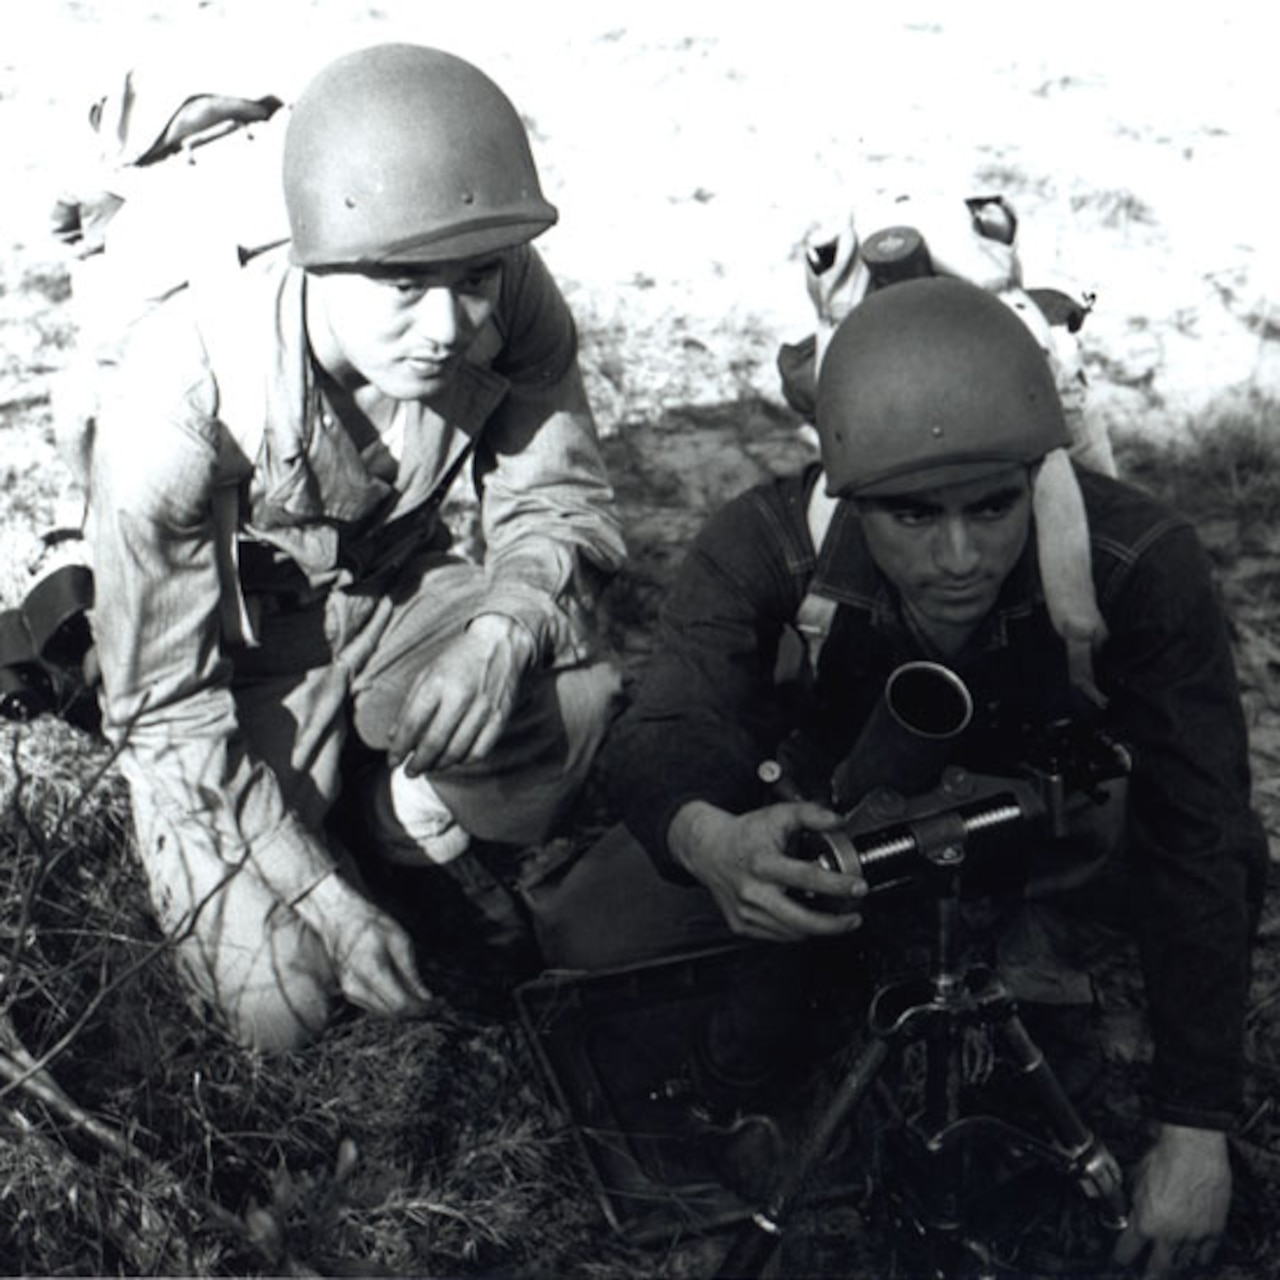 Two men set up a mortar launcher on the ground.